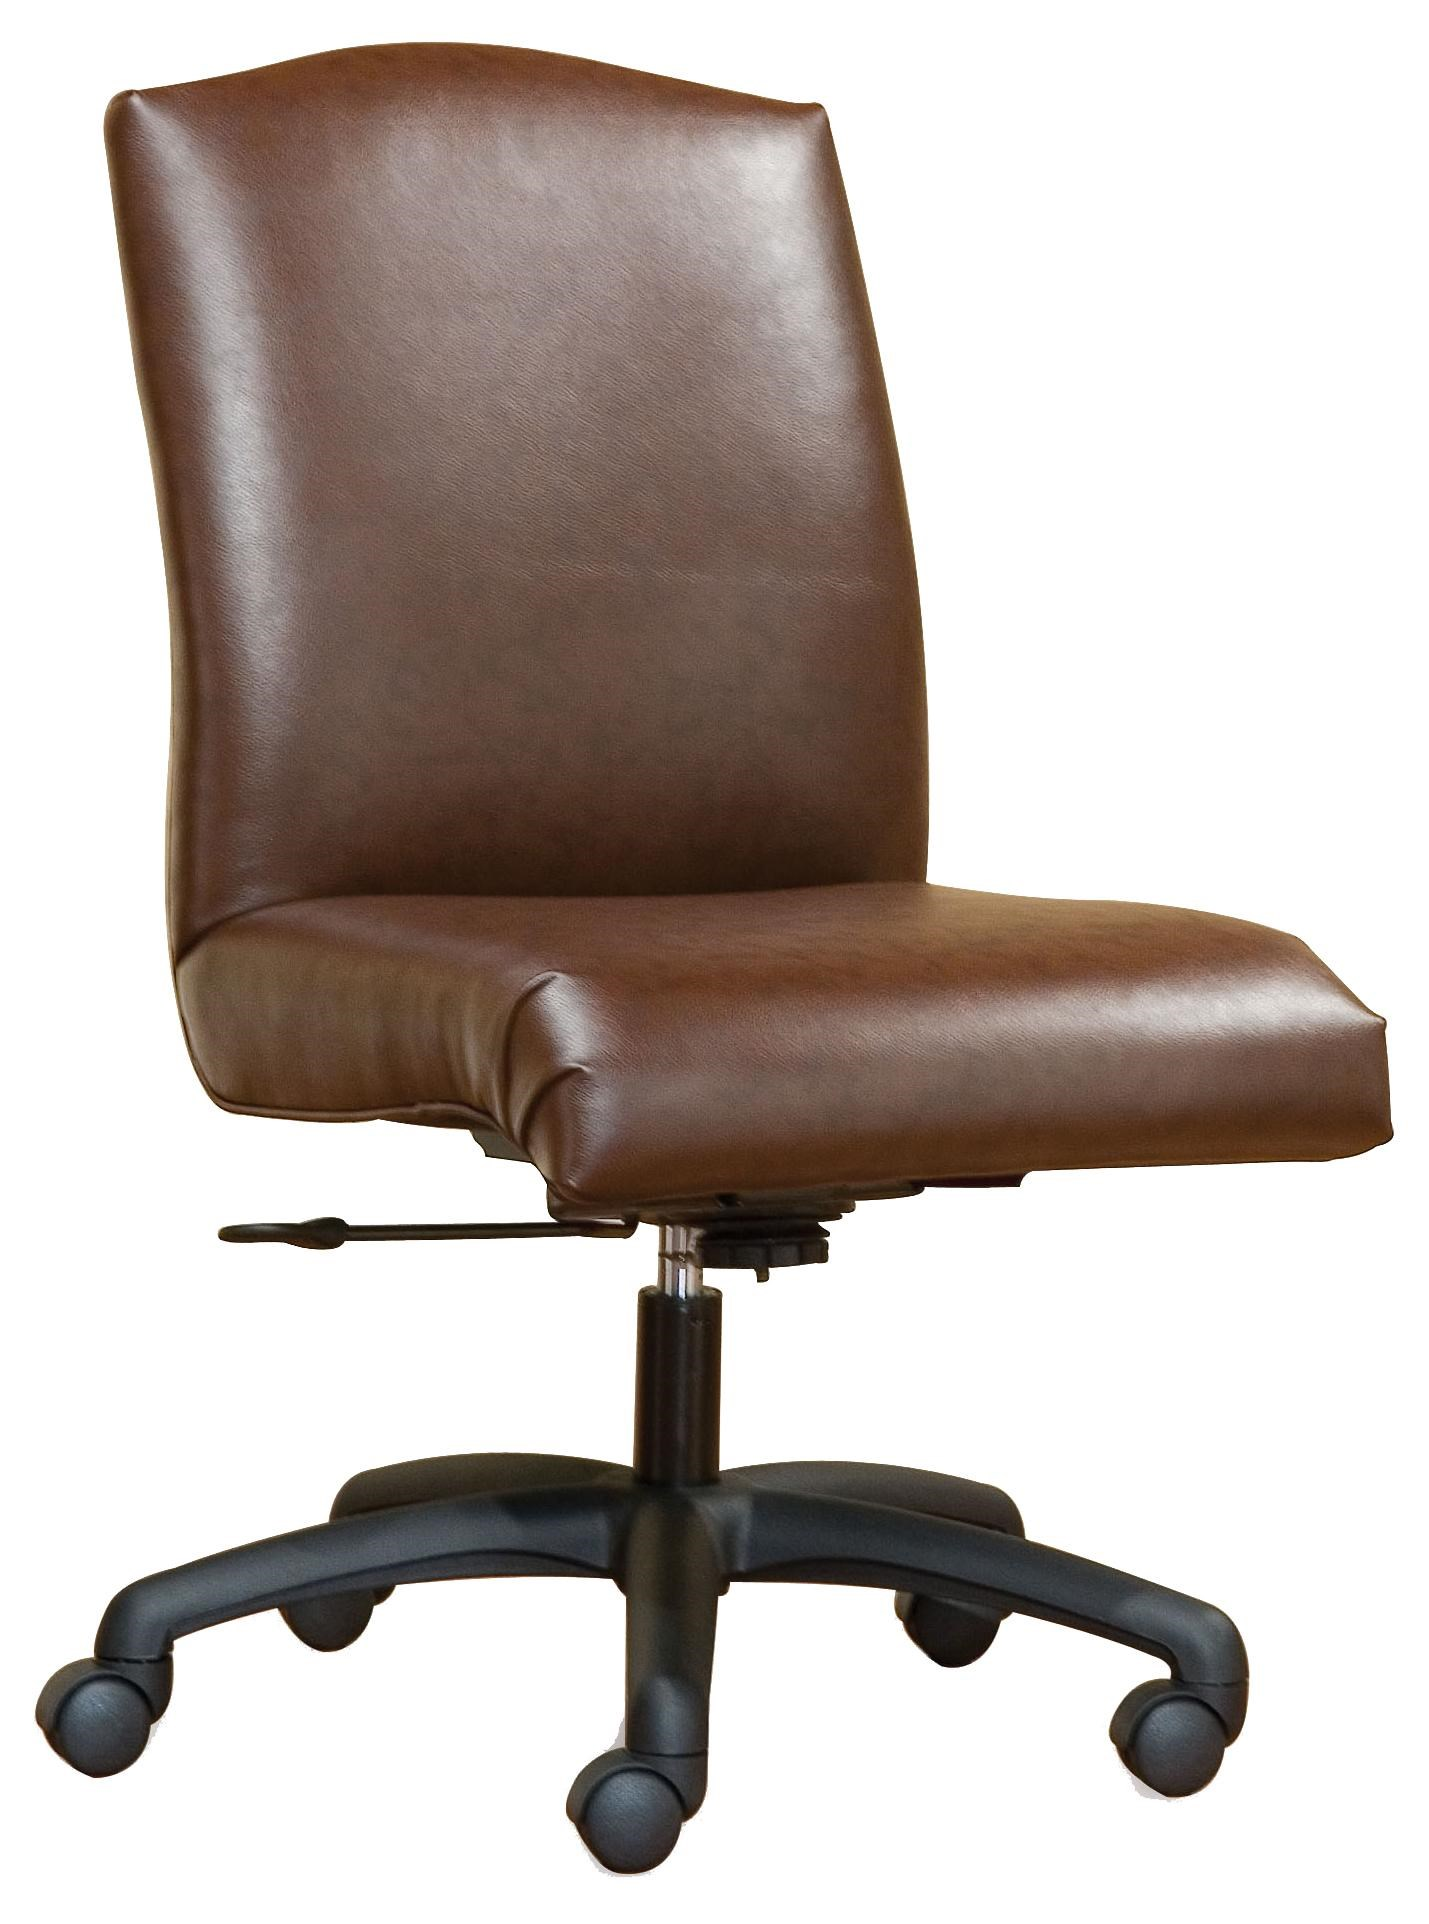 armless chair office ergonomic desk no wheels fairfield furnishings smooth swivel olinde s